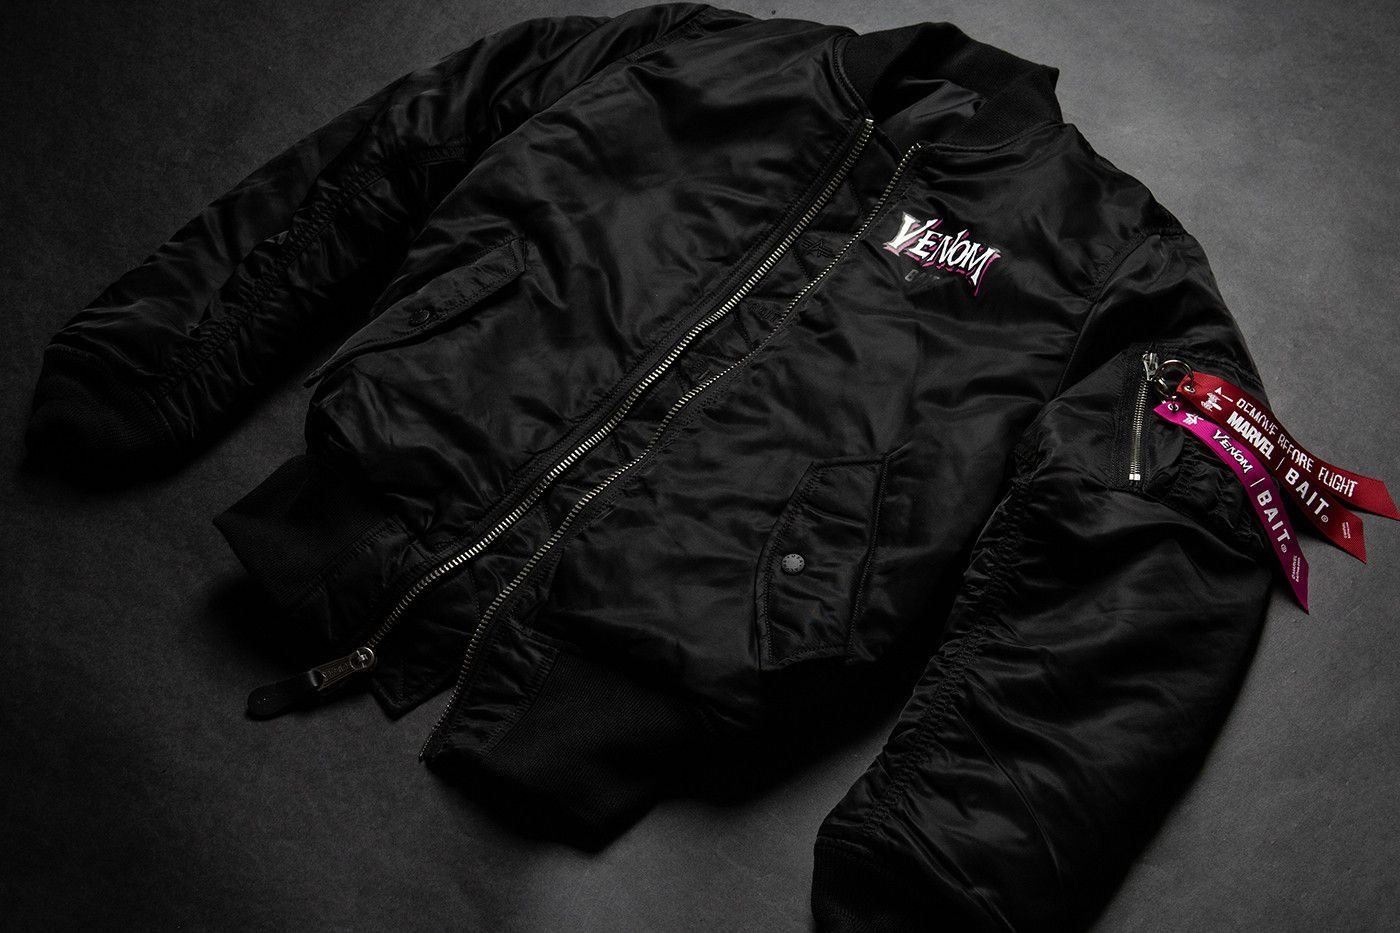 f054acaa284 BAIT Marvel PUMA Cell Venom black white movie film release info alpha  industries ma-1 bomber jacket